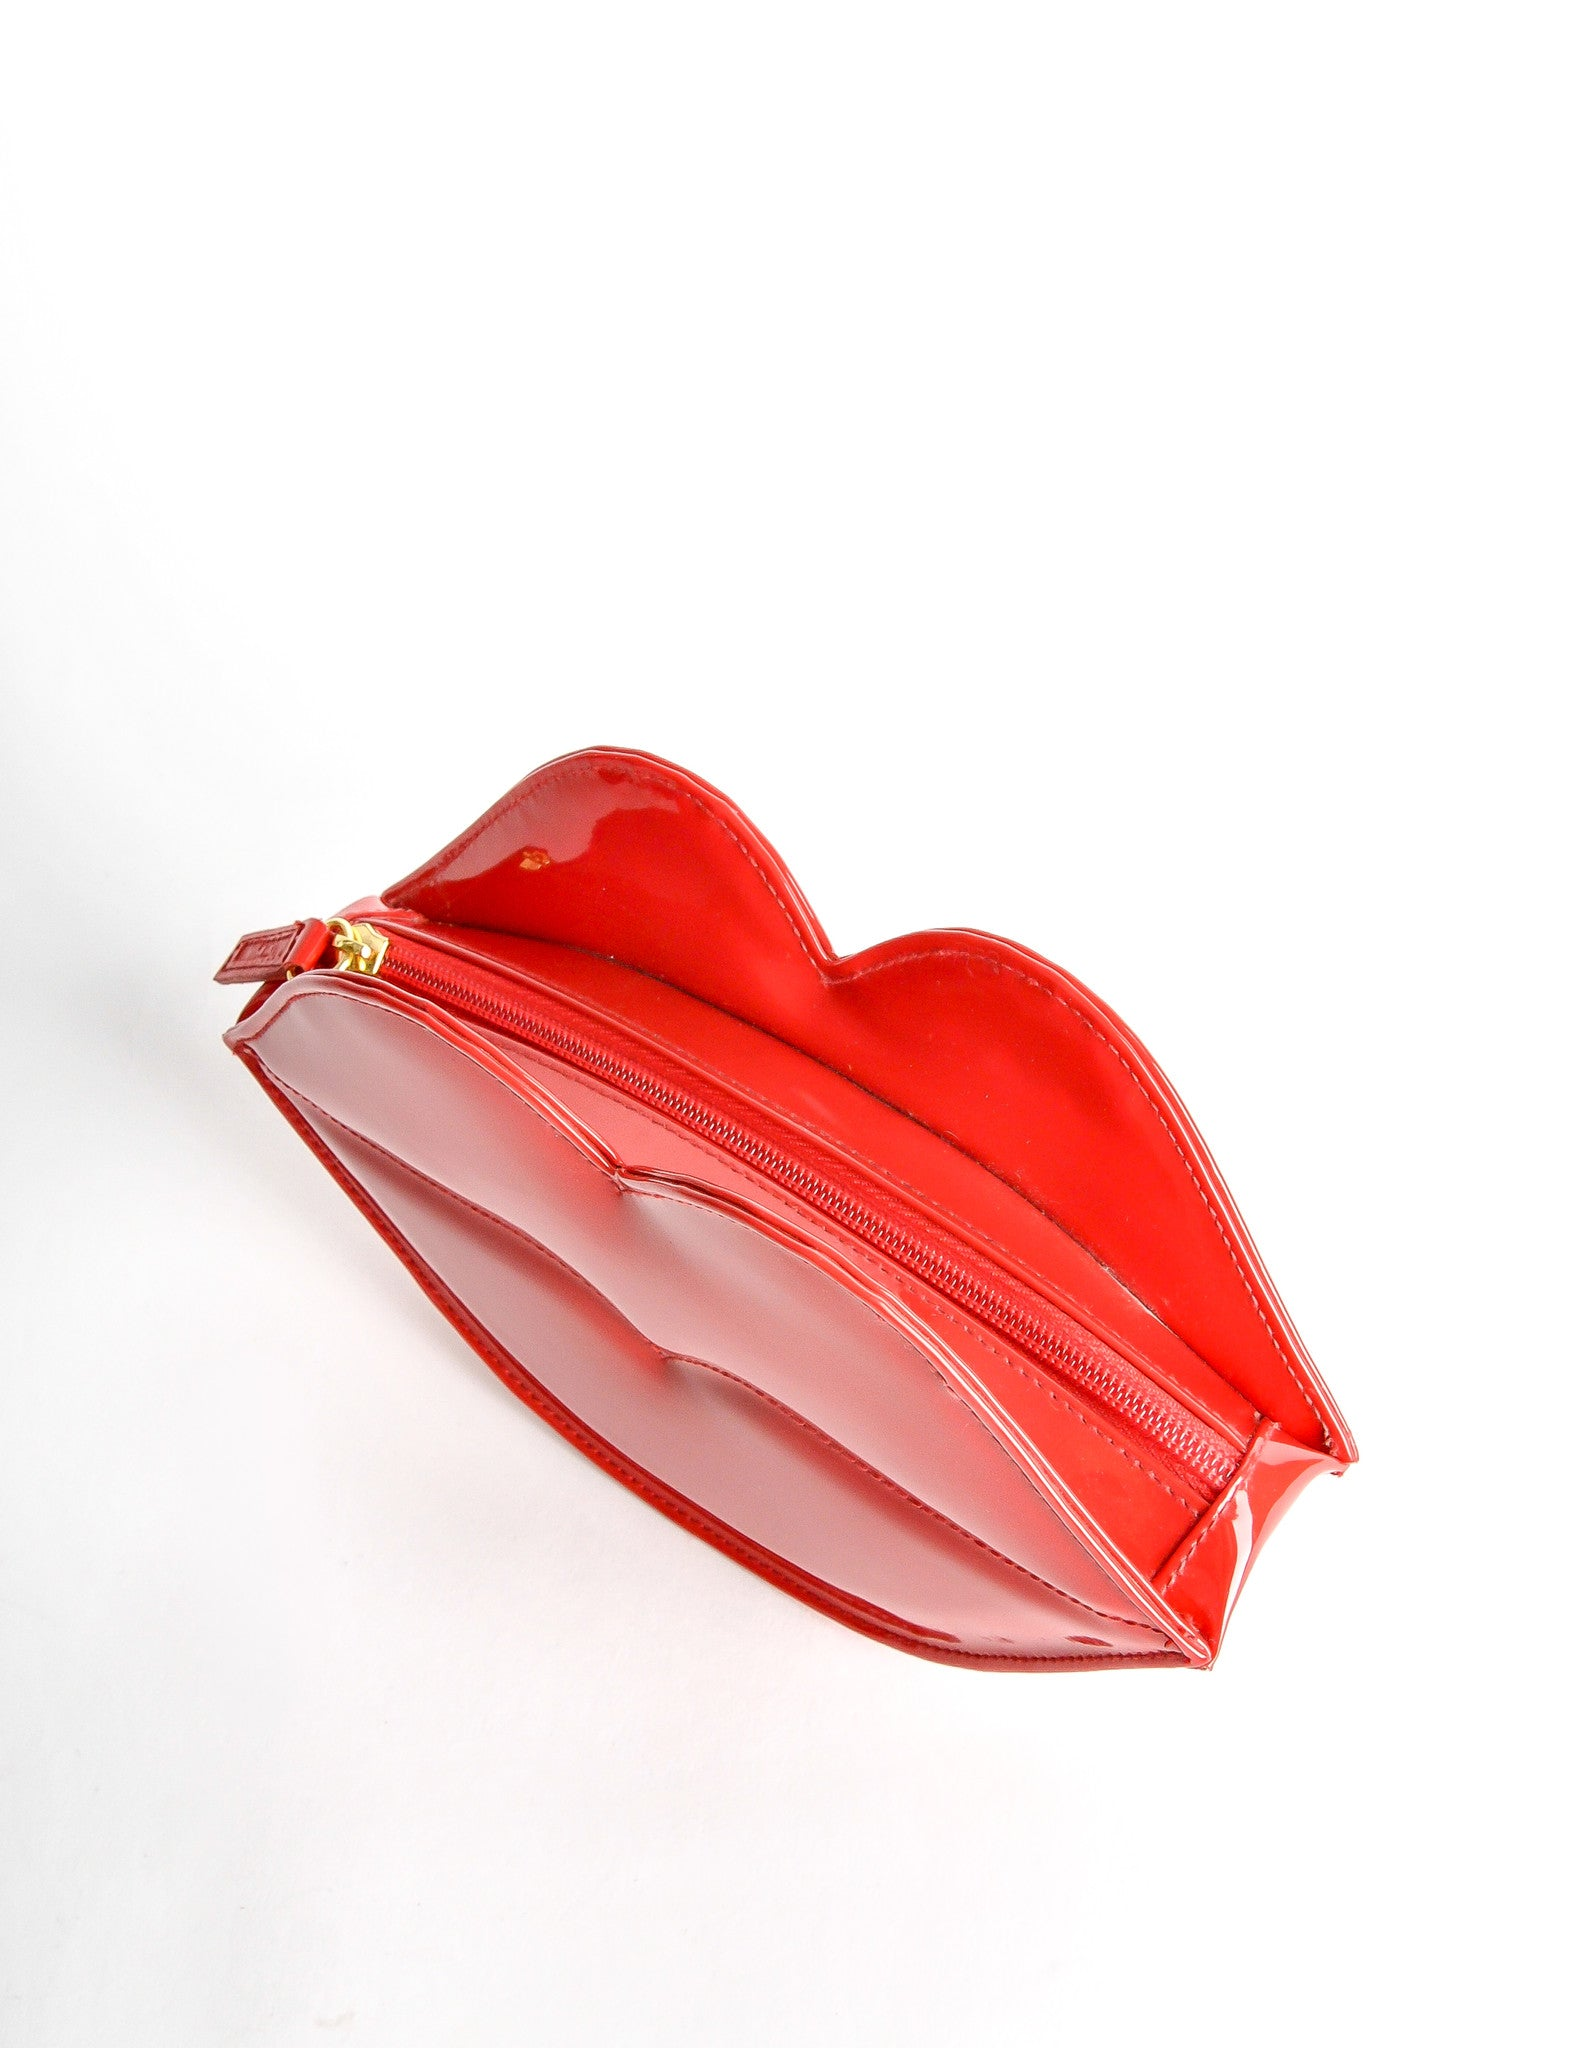 bb243e925c Moschino Vintage Red Patent Leather Lips Clutch Bag - Amarcord Vintage  Fashion - 3